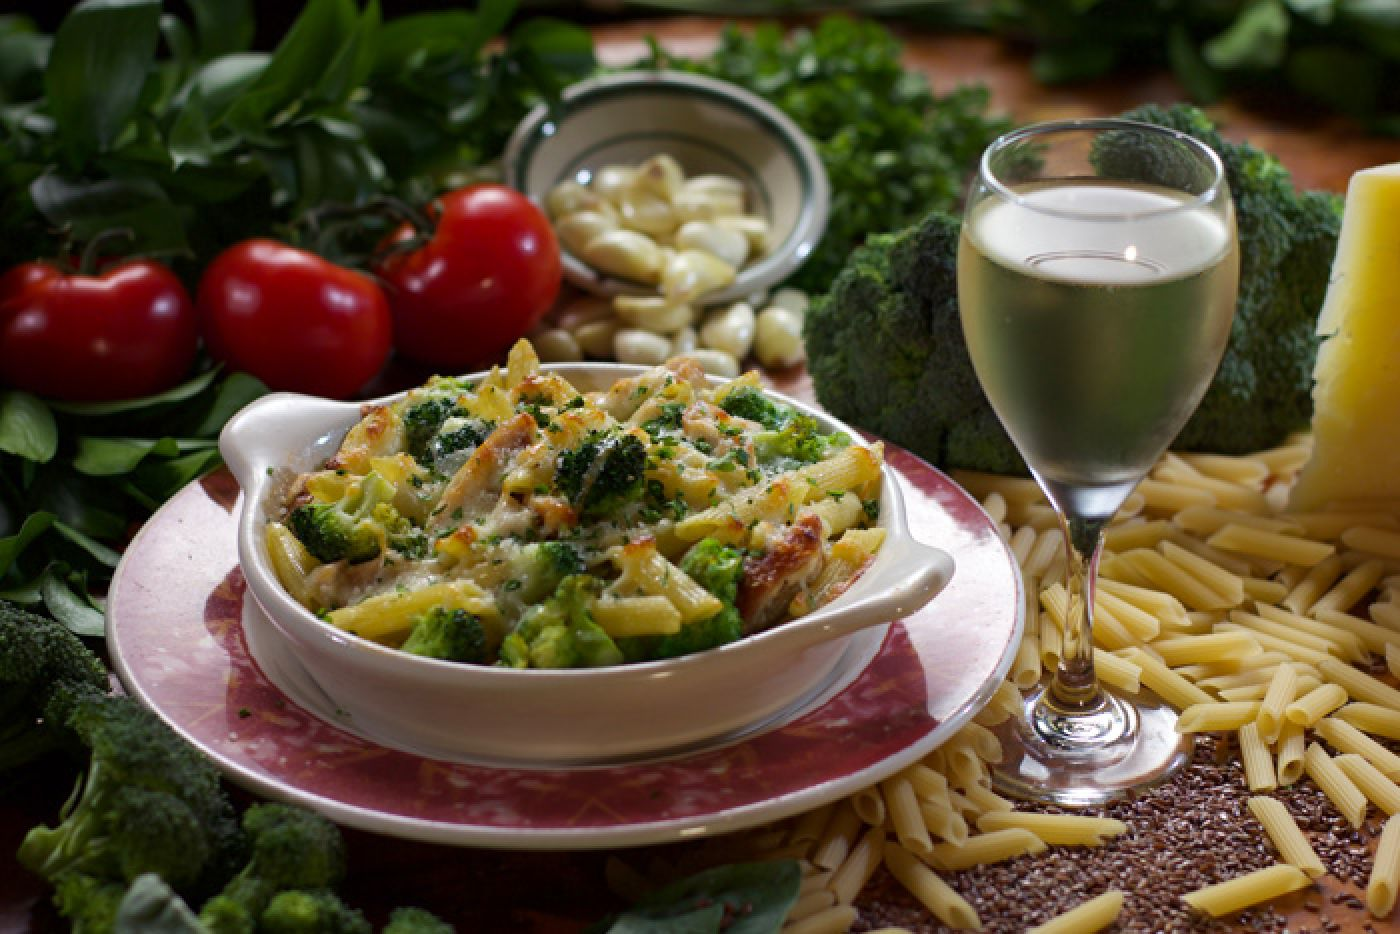 Polcari's Chicken Brocoli Ziti